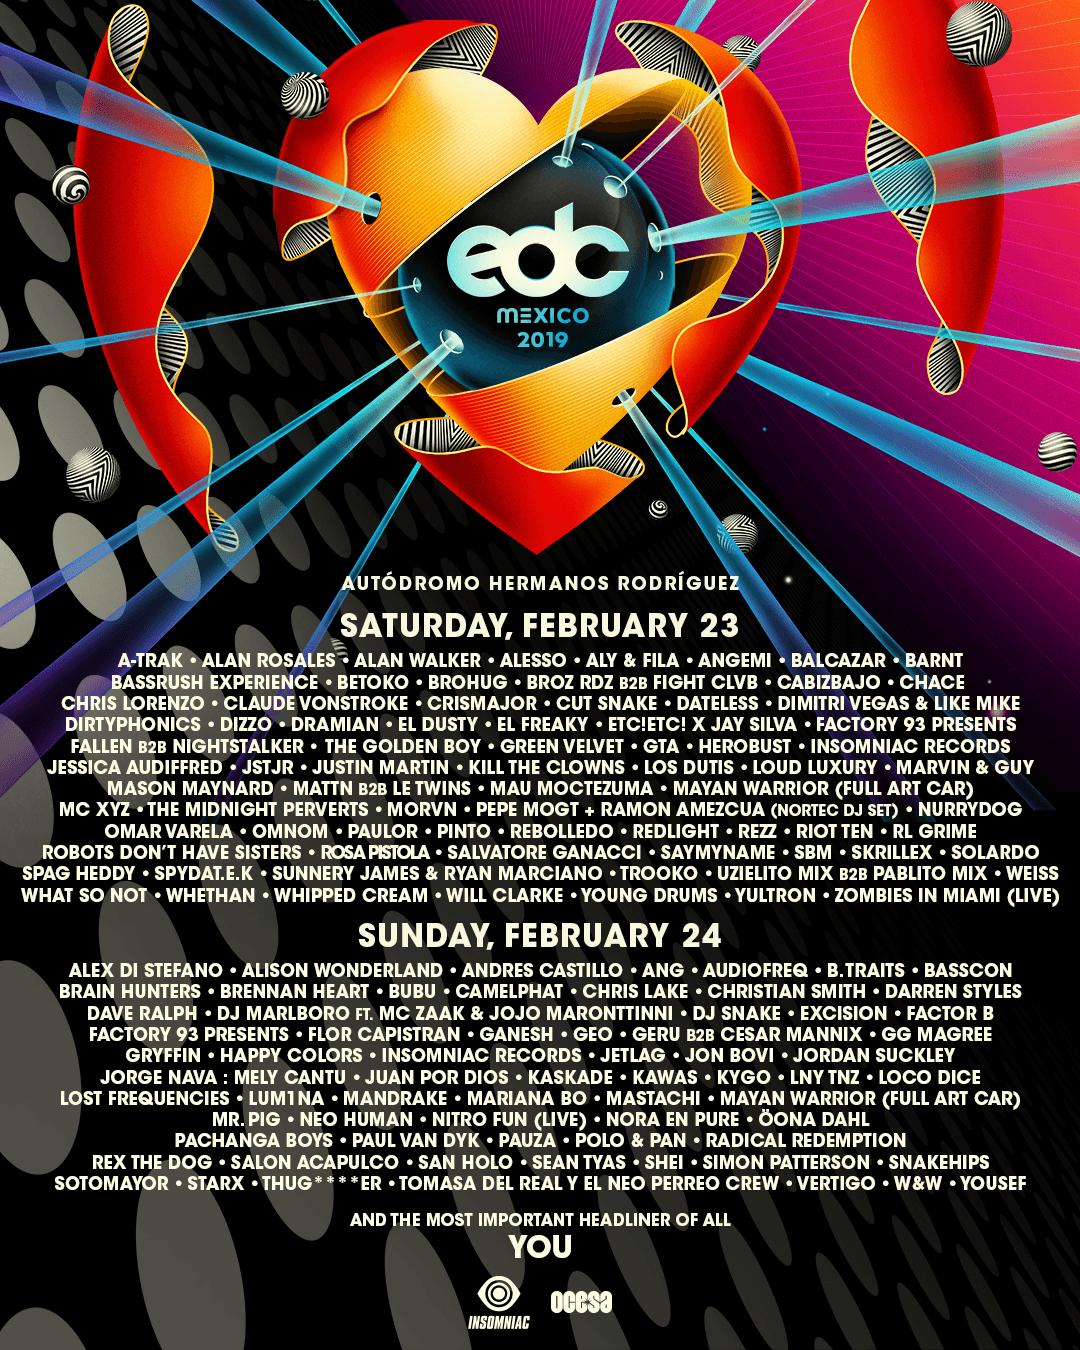 EDC Mexico 2019 artist lineup by day